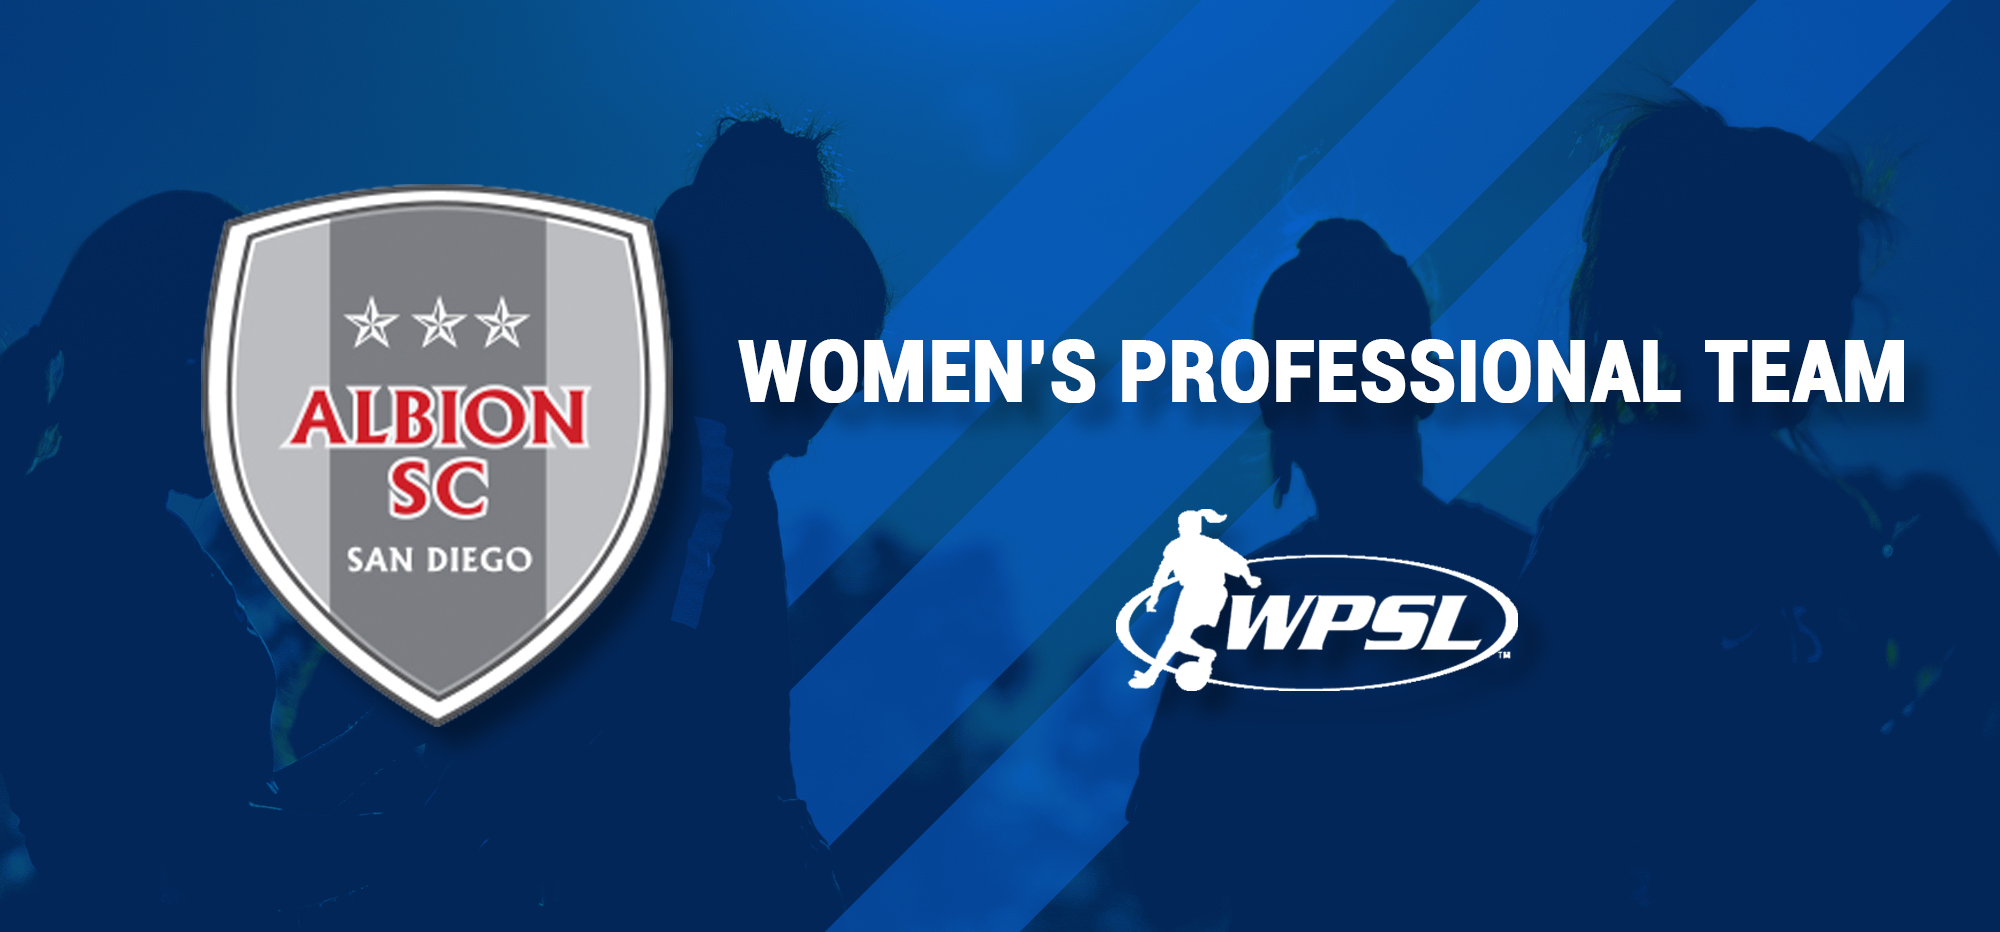 ALBION SC WILL NOW HAVE A WOMENS PROFESSIONAL TEAM TO SIT ATOP THE GIRLS US DEVELOPMENT ACADEMY.